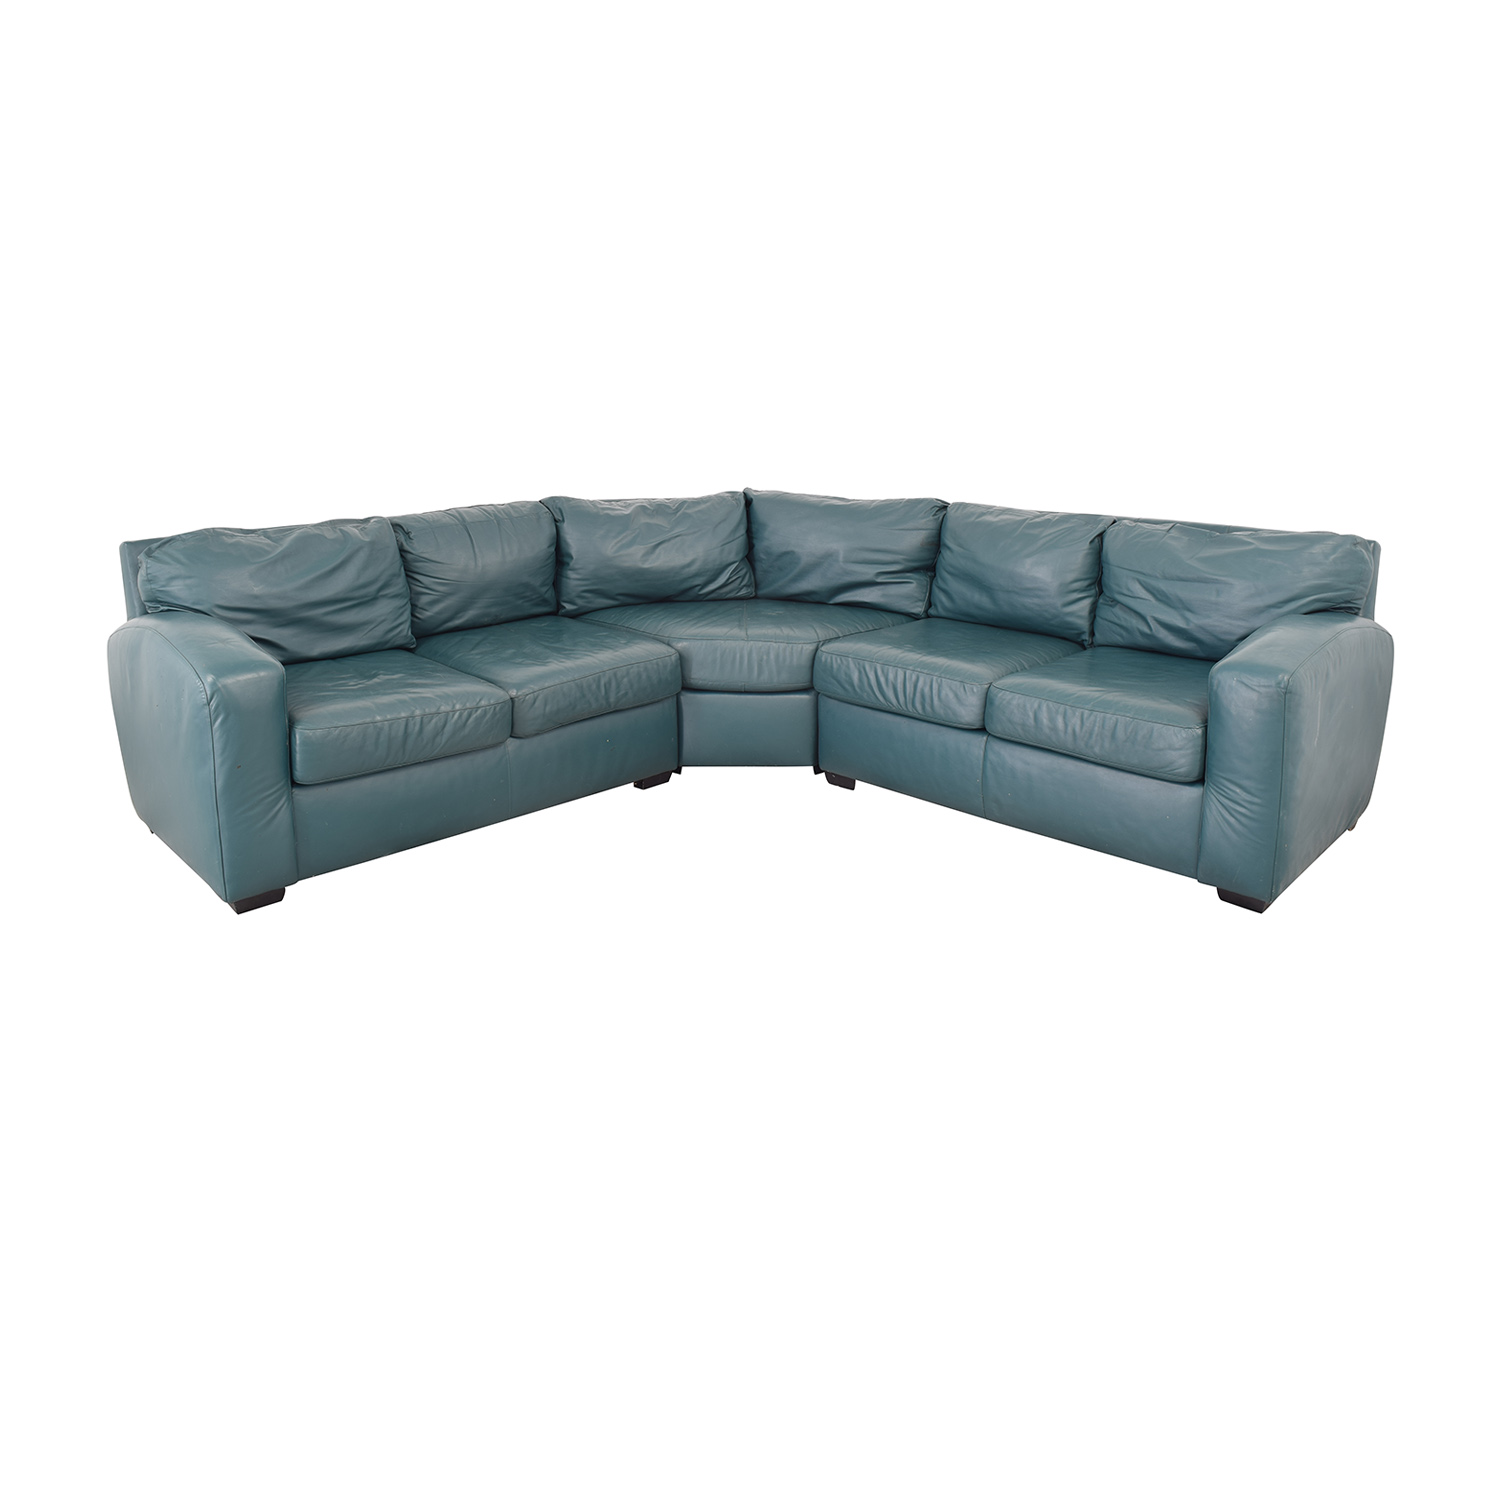 Carson Carson's Five Seat L-Shape Sectional for sale